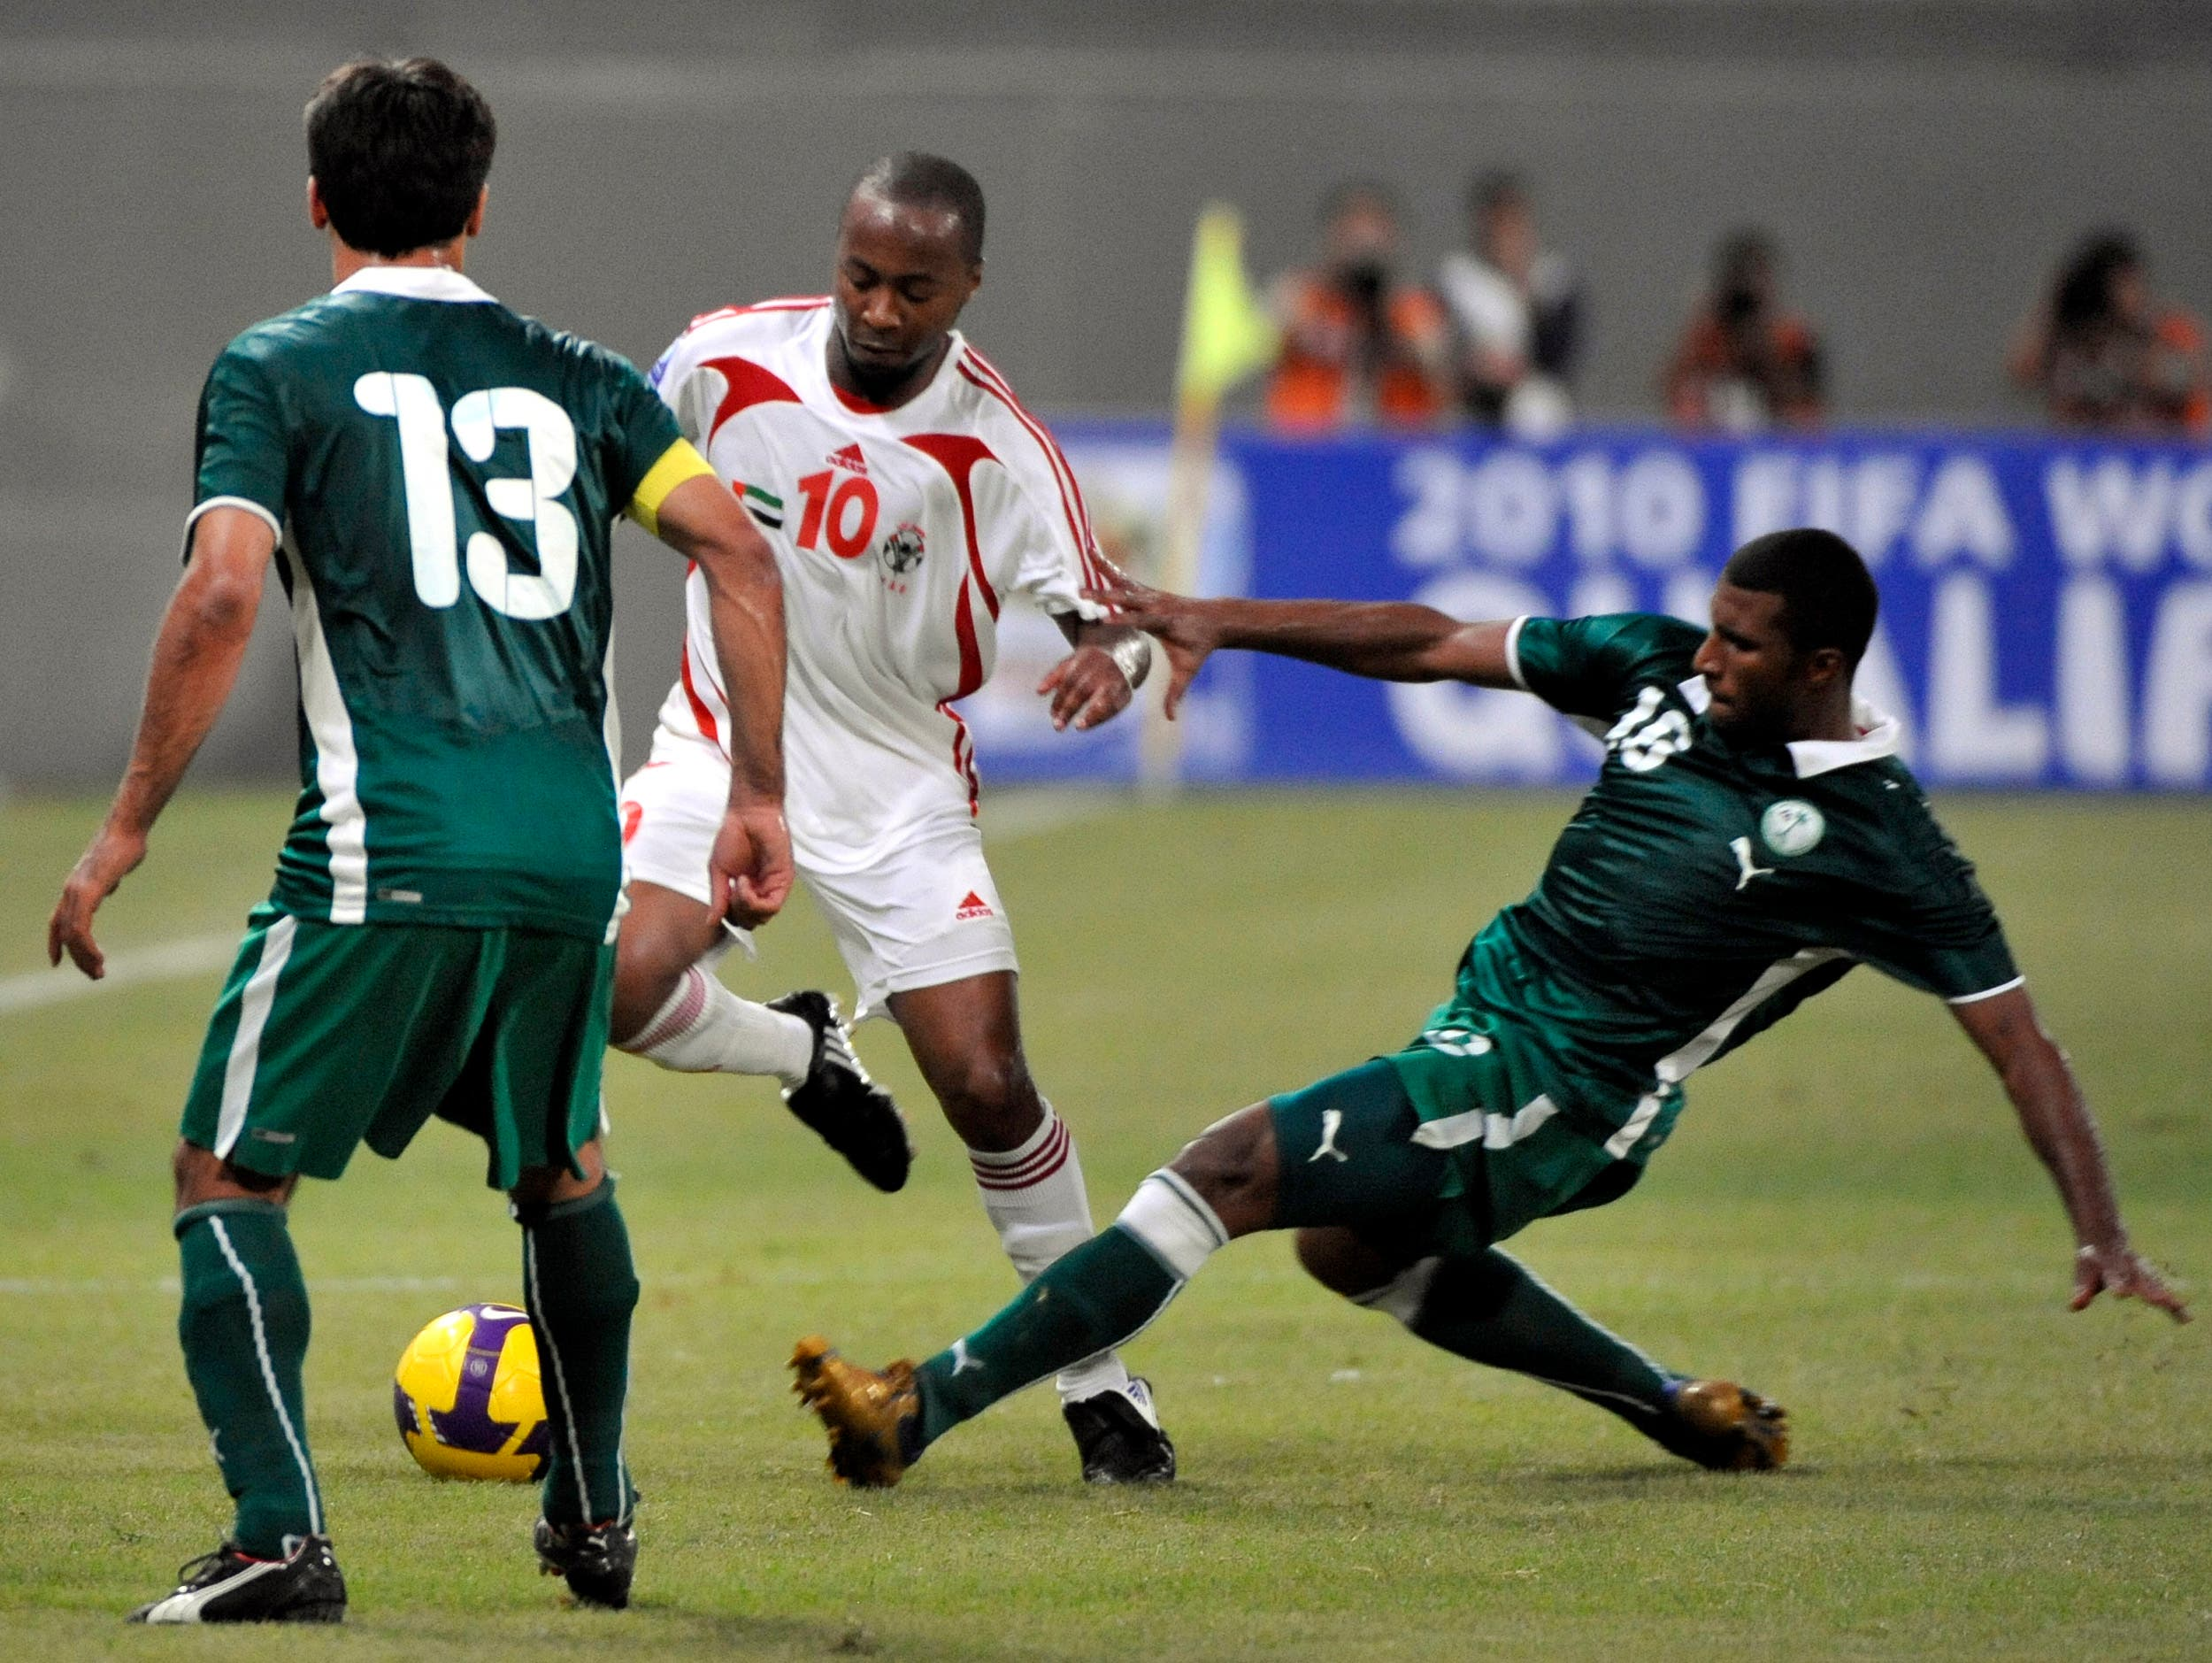 UAE's Ismaeil Matar, center, fights for the ball with Saudi' Arabia's Khaled Althaker, right, and Hussain Sulaimani during a World Cup Qualifying match in Abu Dhabi, United Arab Emirates, Wednesday, Sept. 10, 2008. (AP)